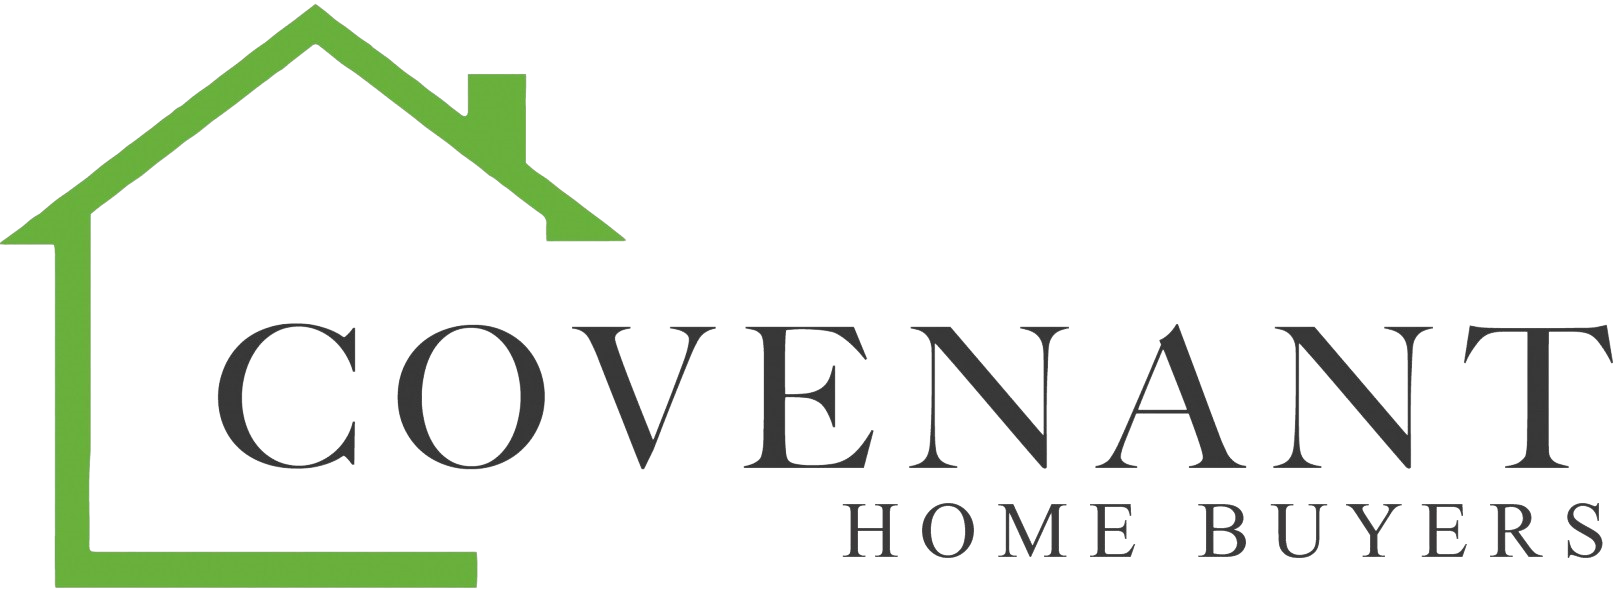 Covenant Home Buyers logo